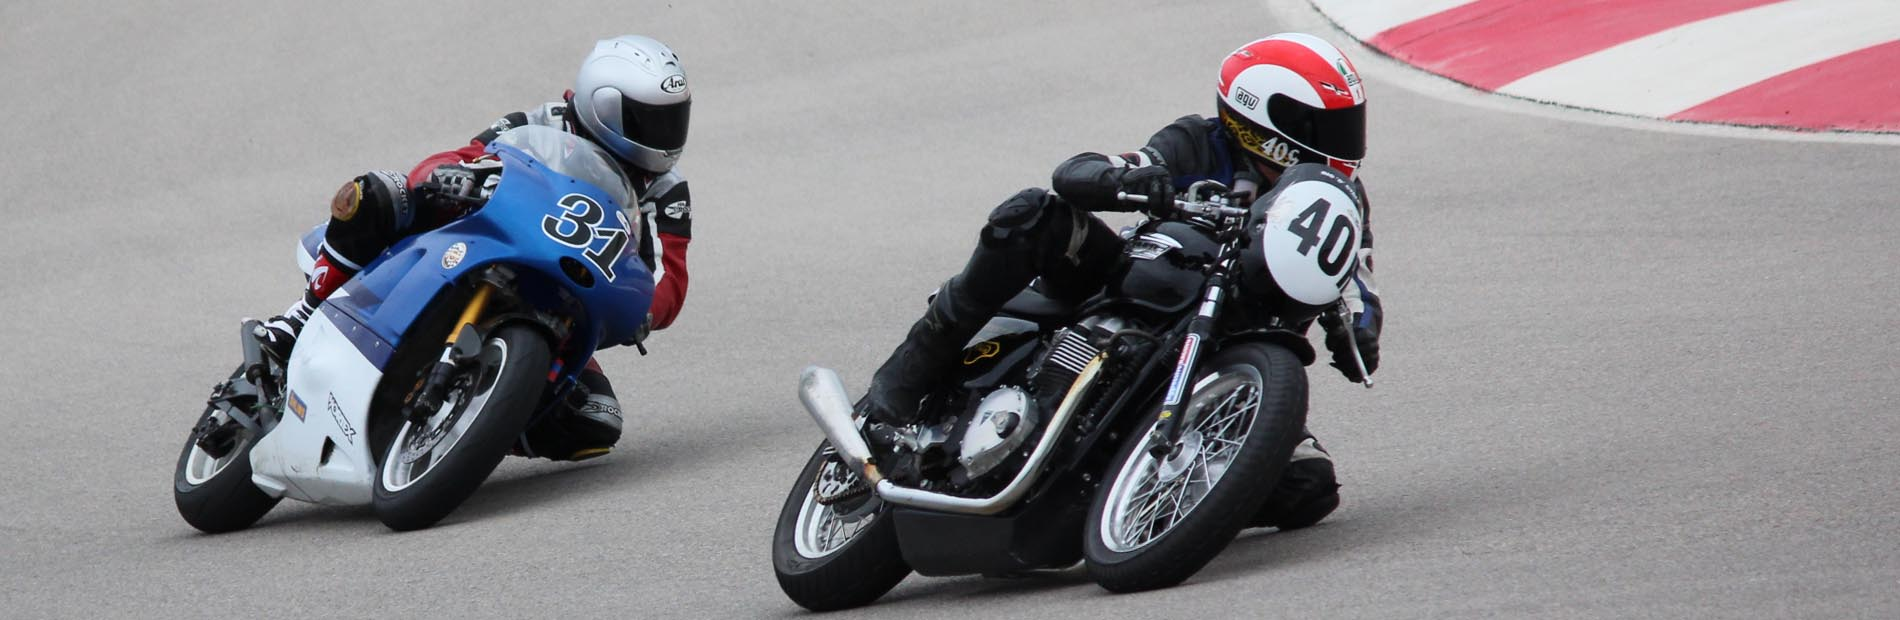 The 2016 Bonneville Vintage GP